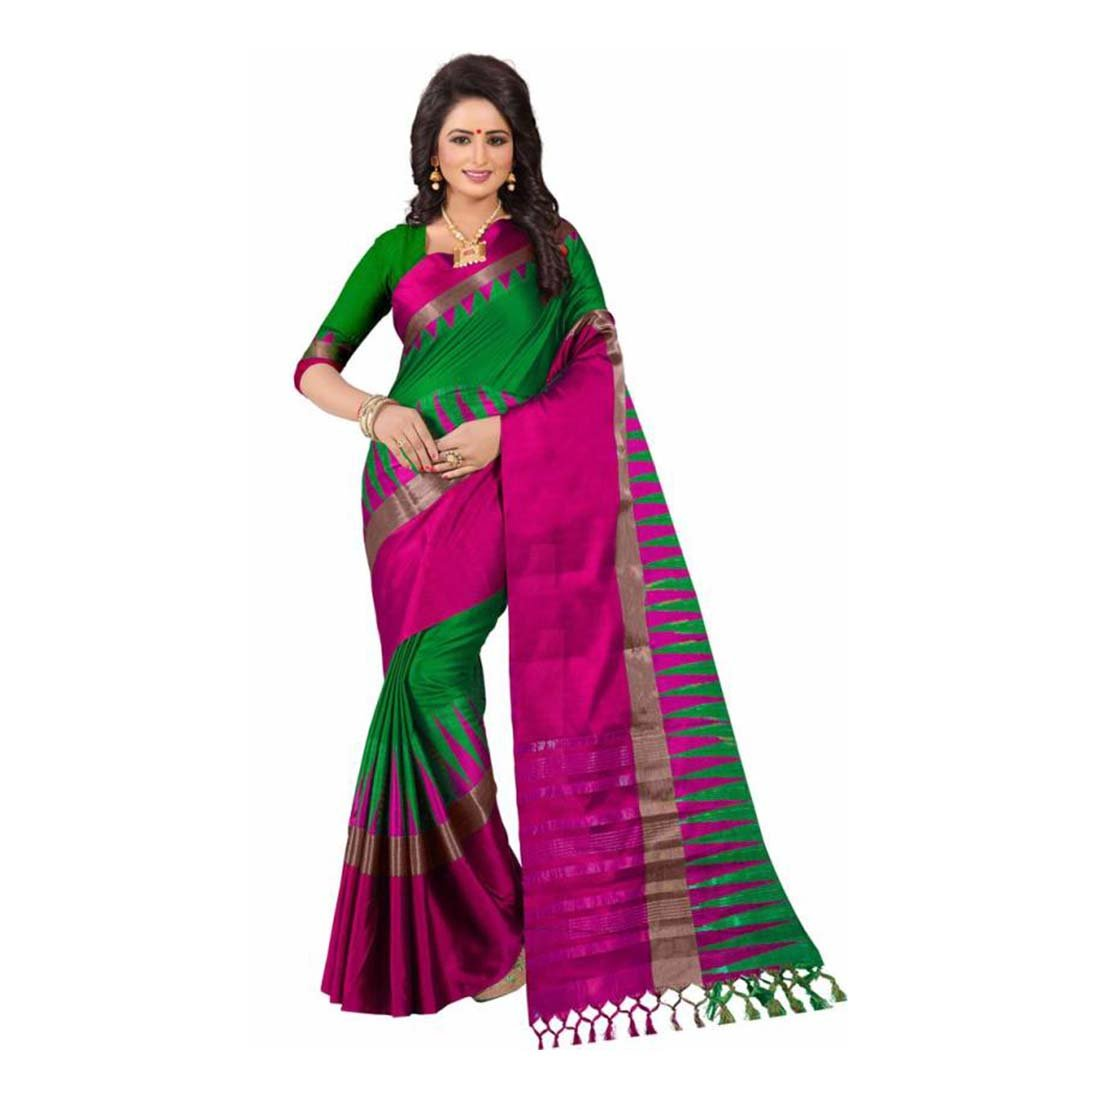 Indian Handicrfats Export Woven Kanjivaram Cotton Silk Saree (Green, Pink) FKSAR-01312